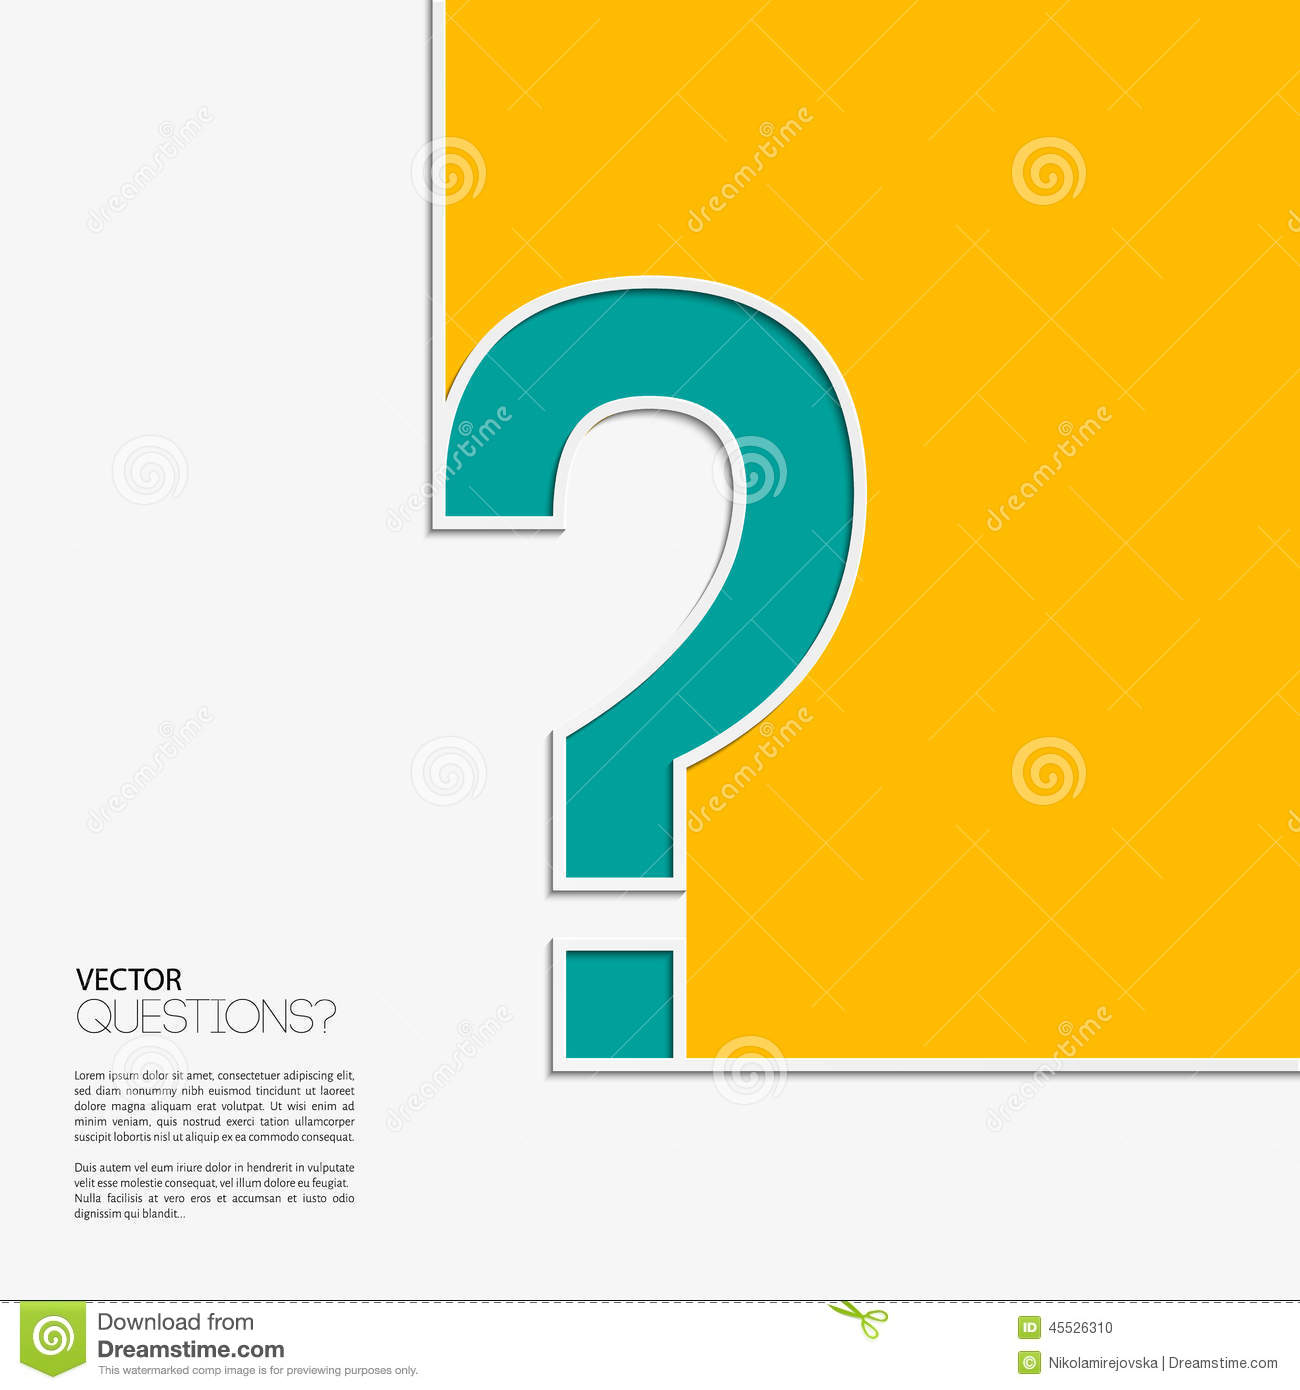 Vector question mark icon in flat design stock vector for Decor questions